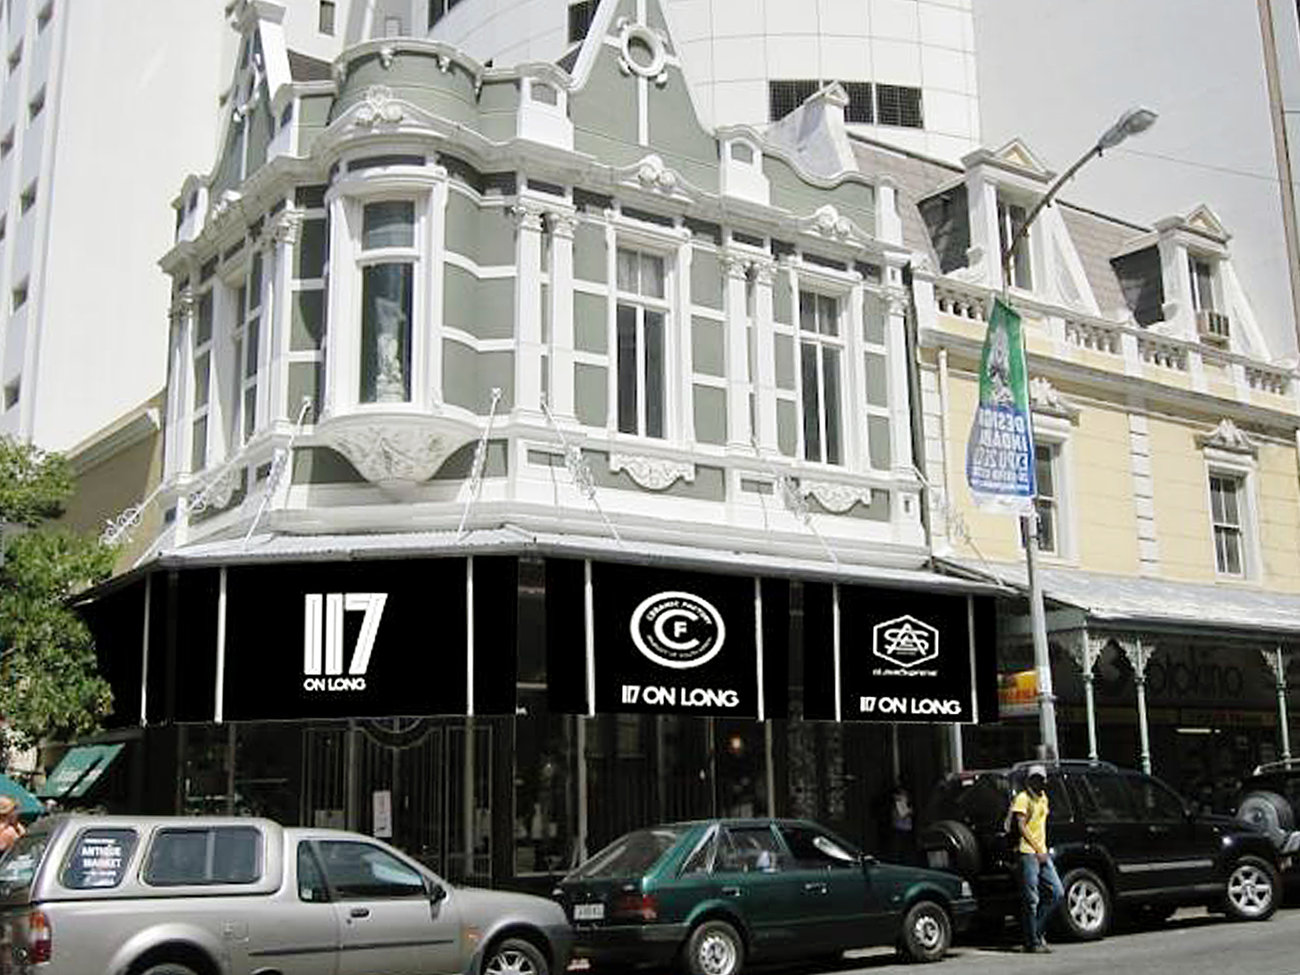 117 on Long Shop in Cape Town